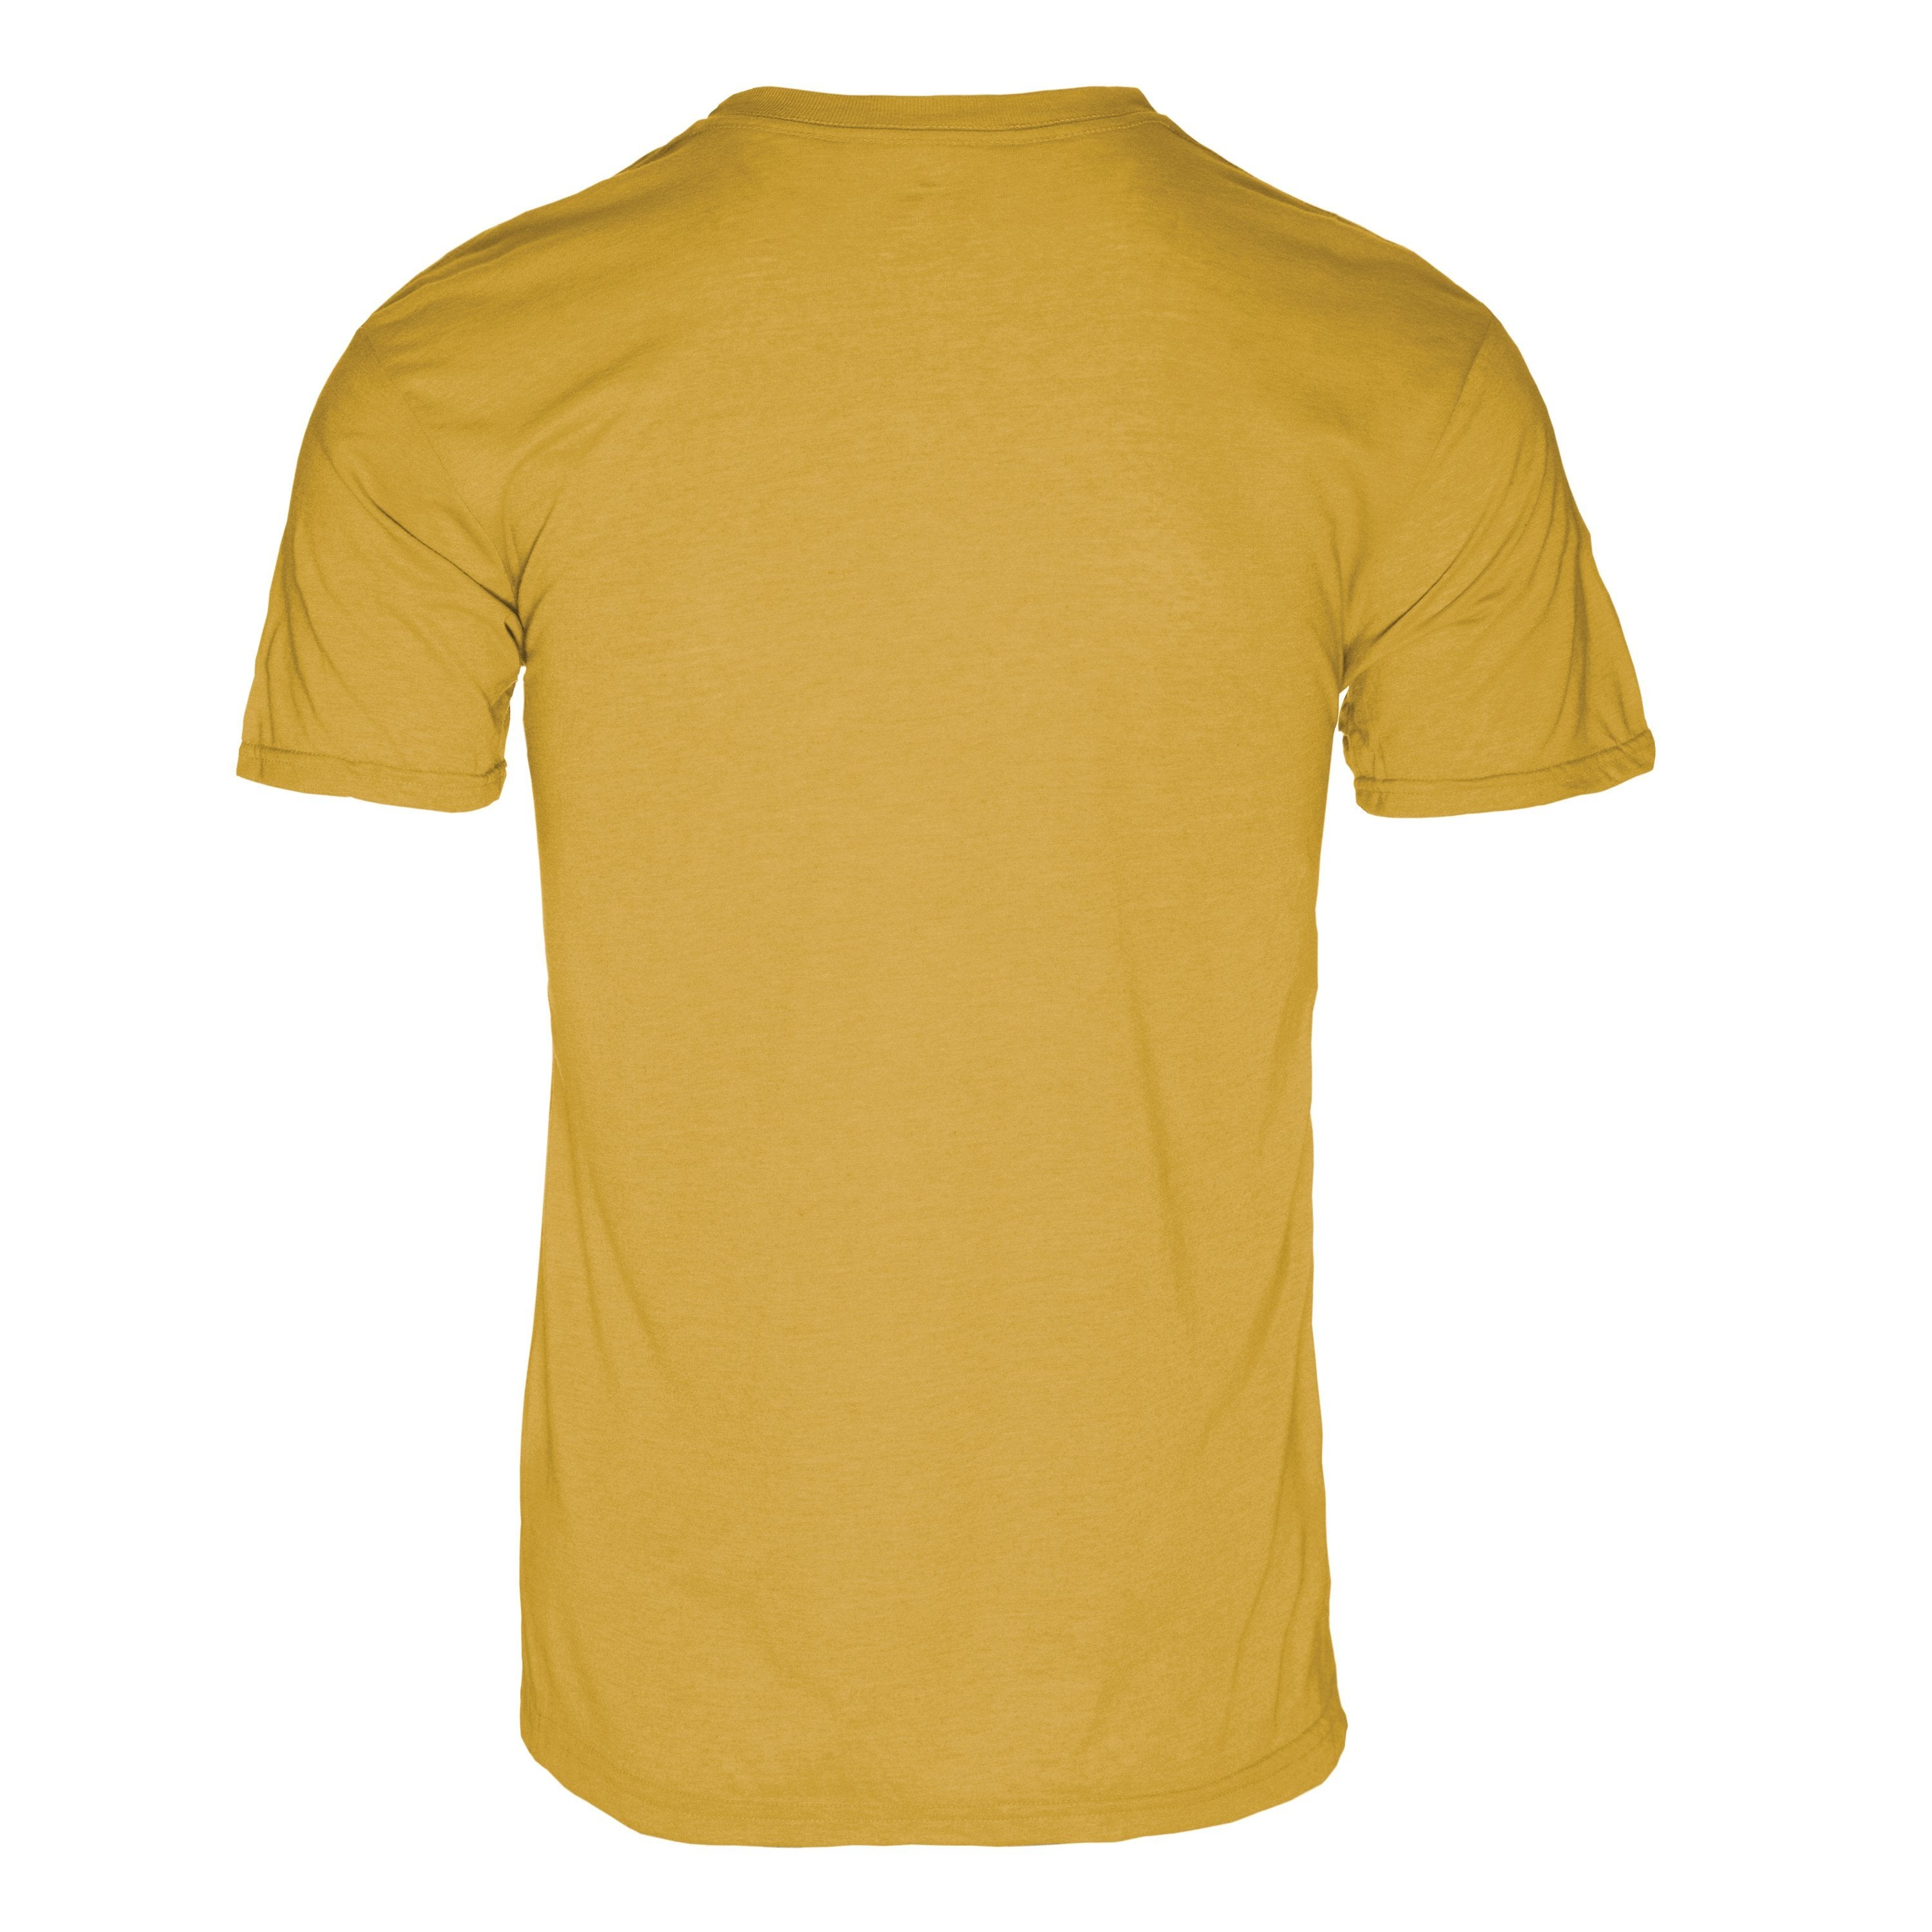 RM100MY Eco REPREVE® Recycled Triblend Crew T-Shirt - Maize Yellow